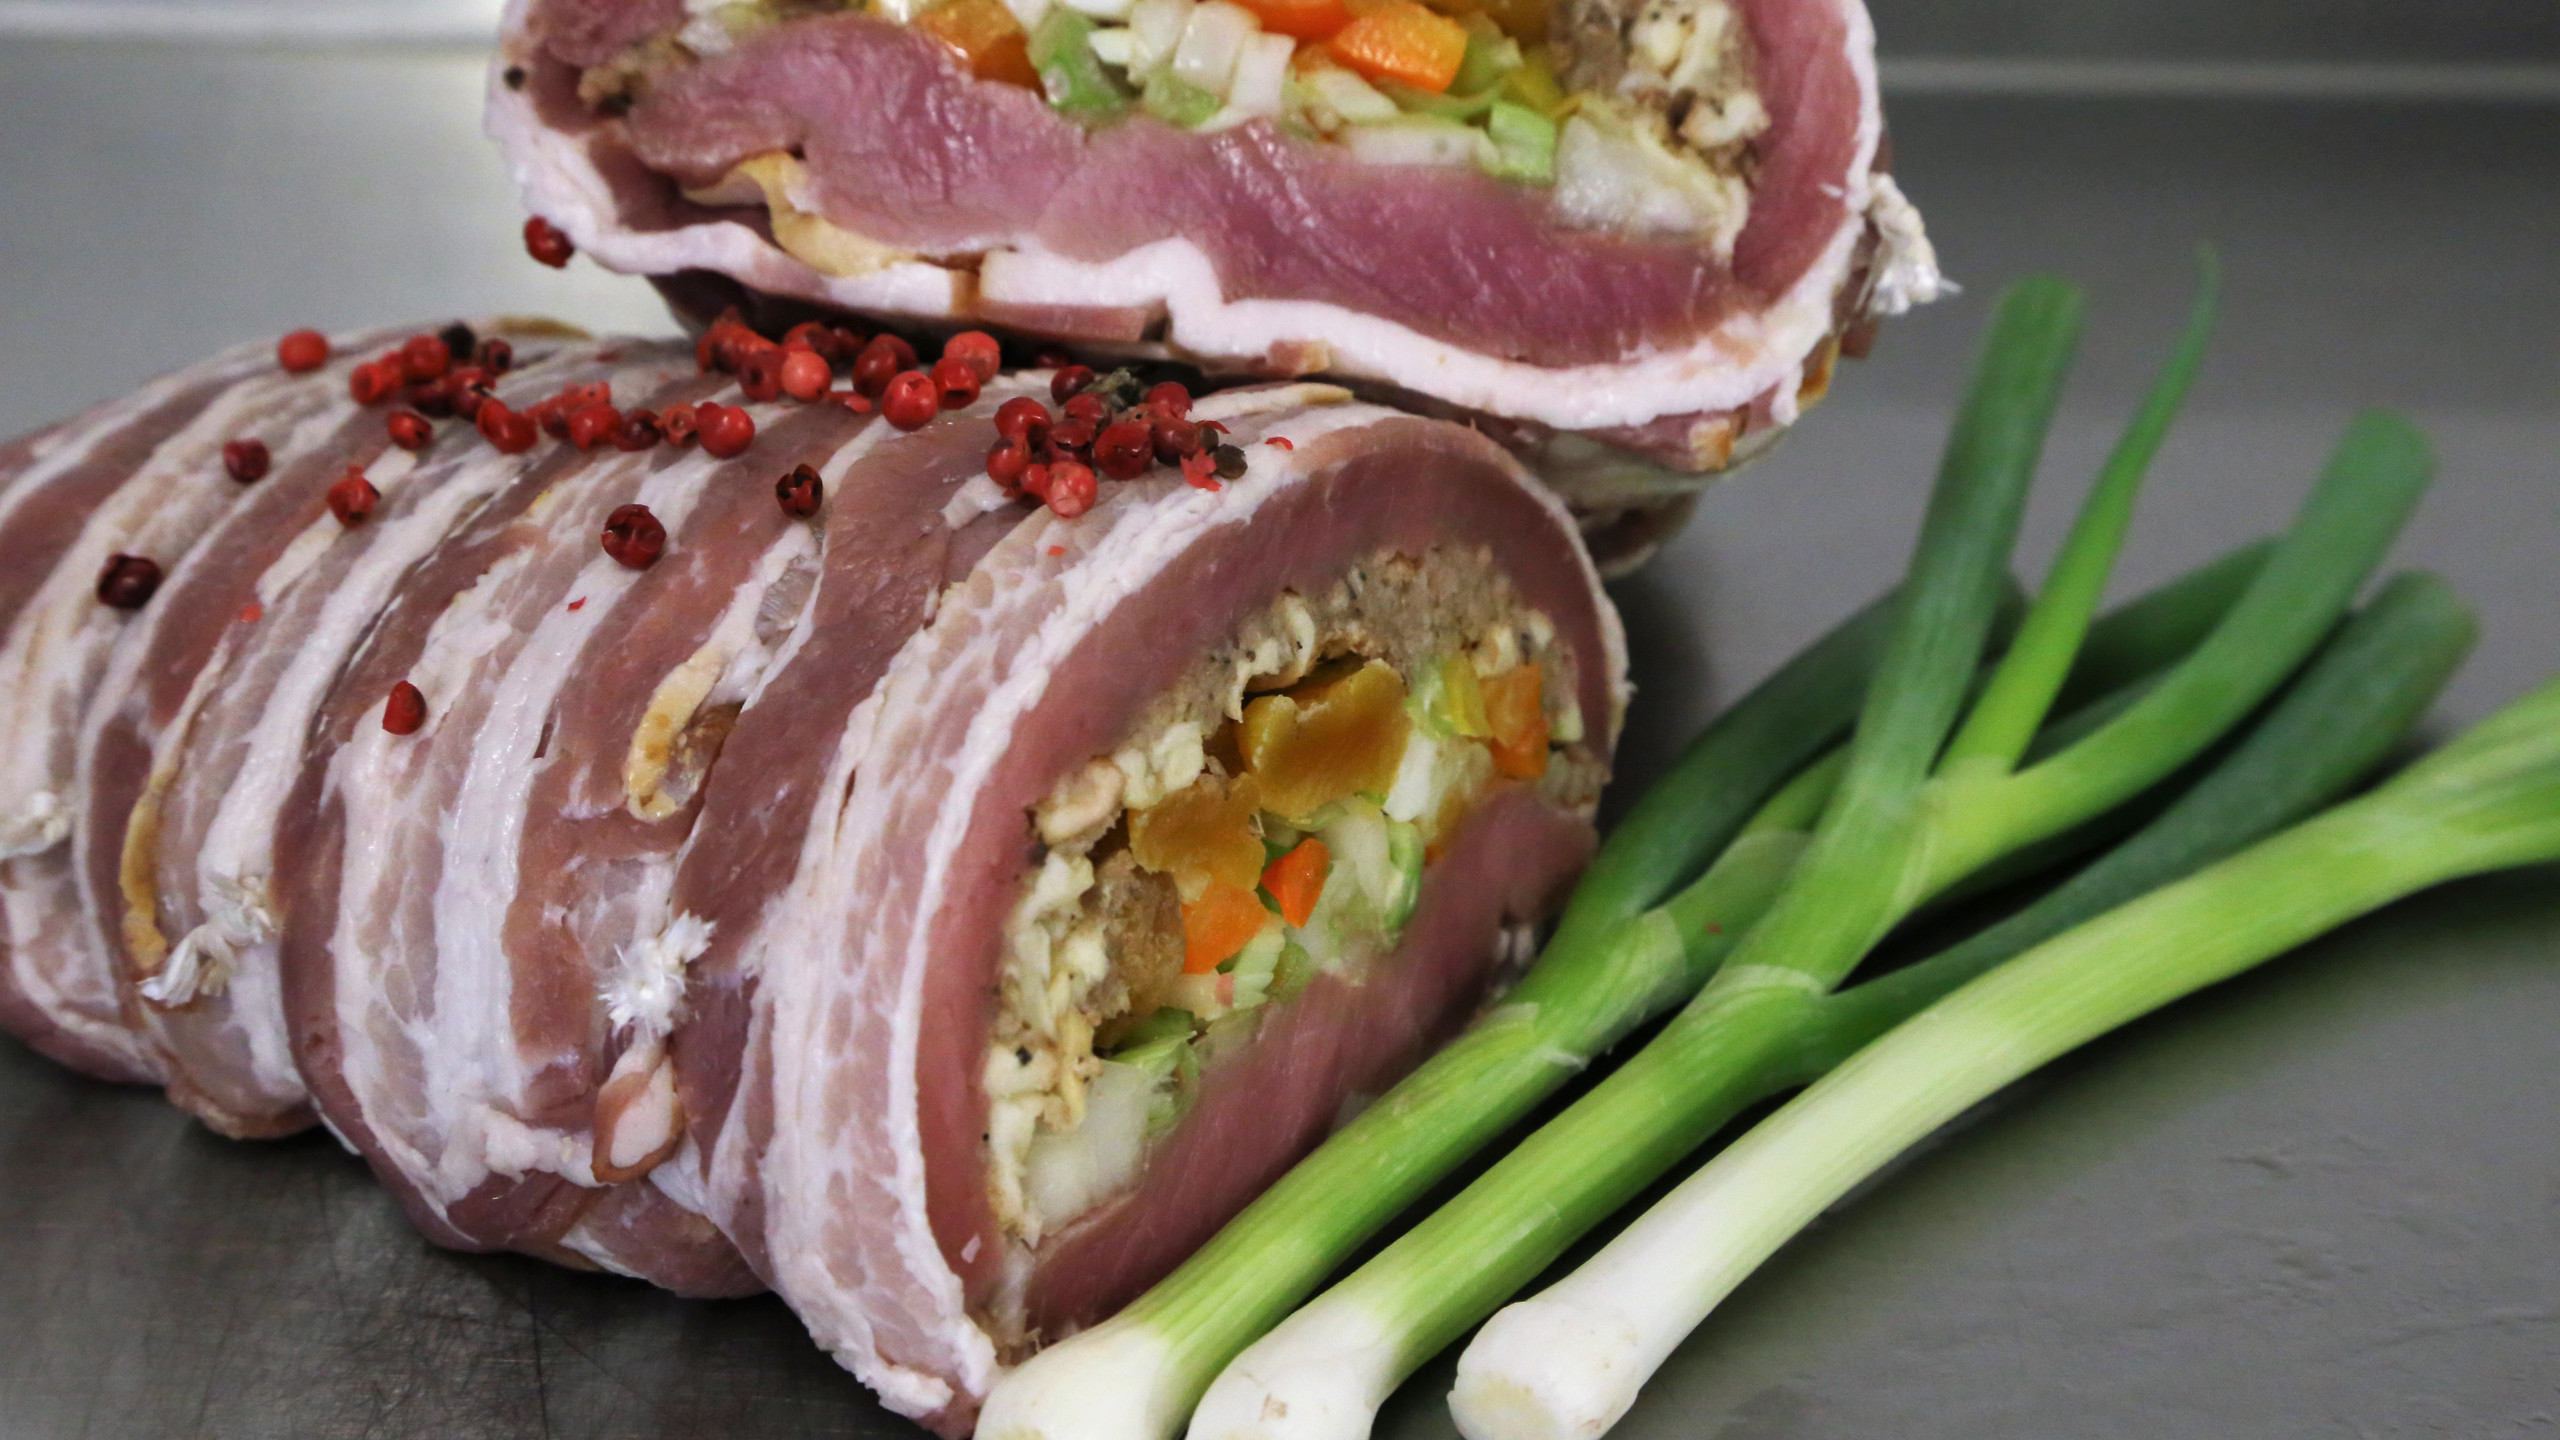 Delicious stuffed pork